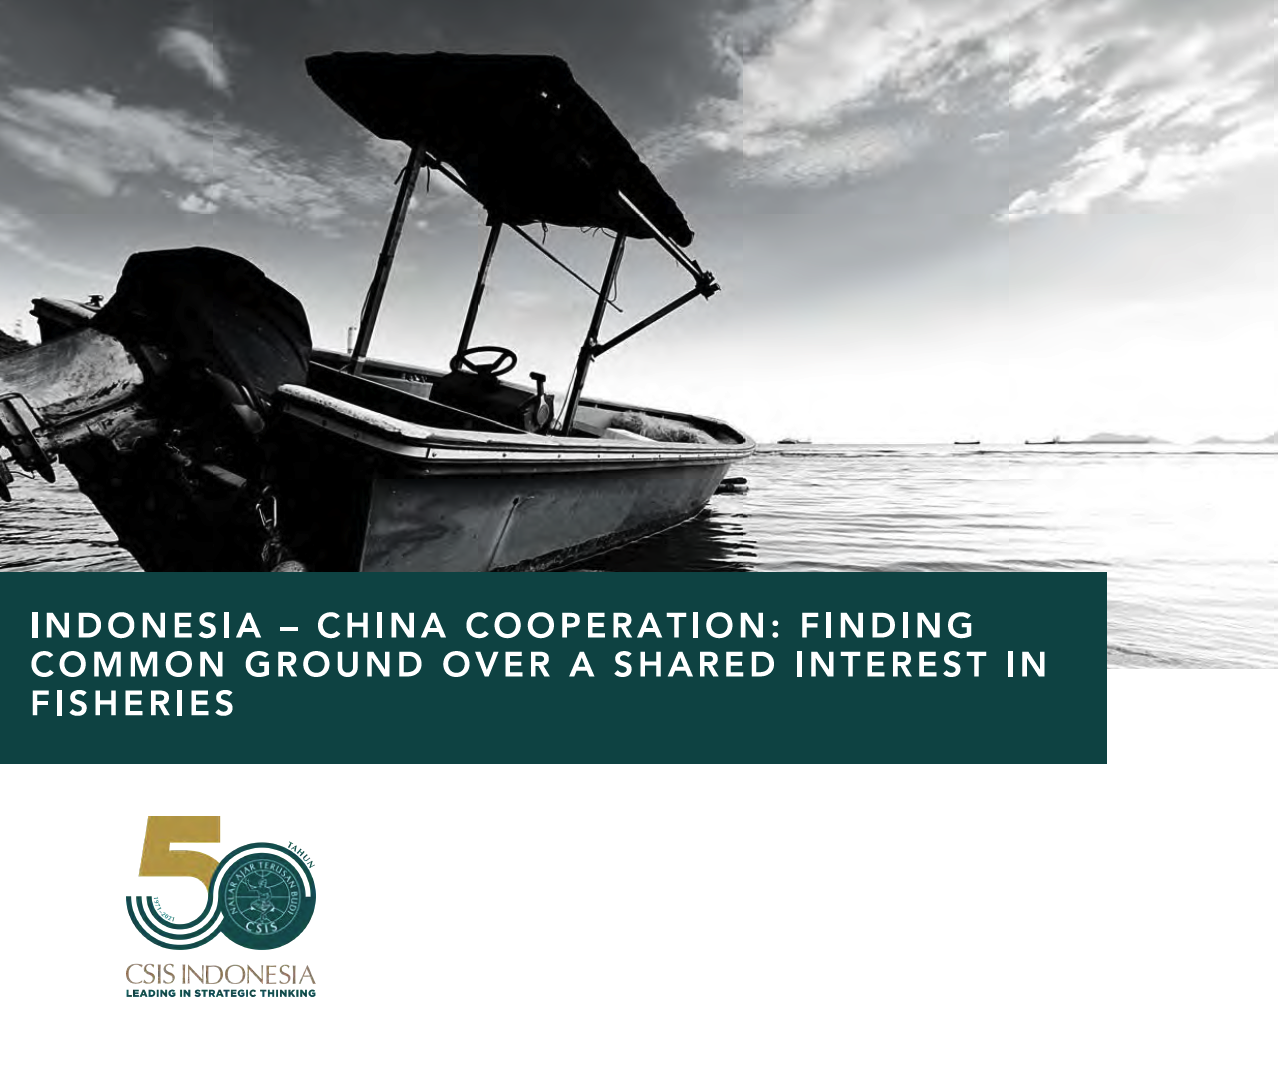 Indonesia-China Cooperation: Finding common ground over a shared inerest in fisheries